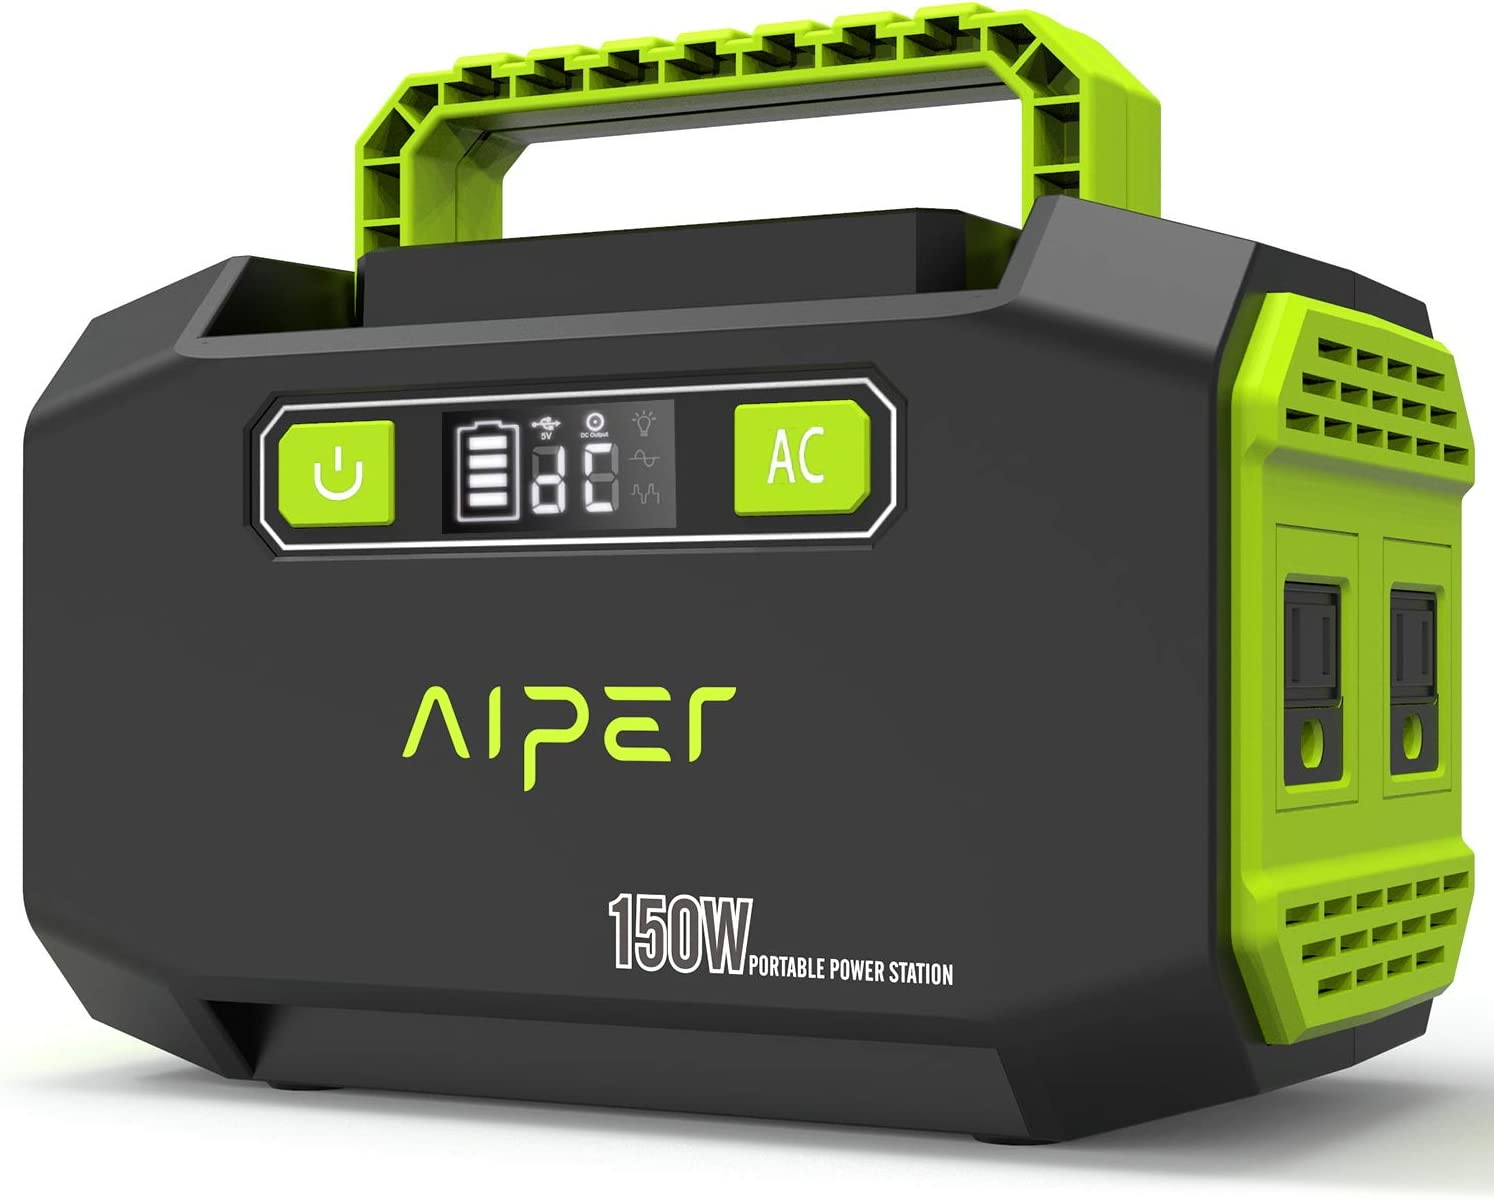 AIPER Portable Power Station 167Wh 45000mAh Solar Generator Lithium Battery Backup Power Supply with Dual 110V AC Outlet, 3 DC Ports, 2 USB Outputs for Home Emergency Camping Outdoors